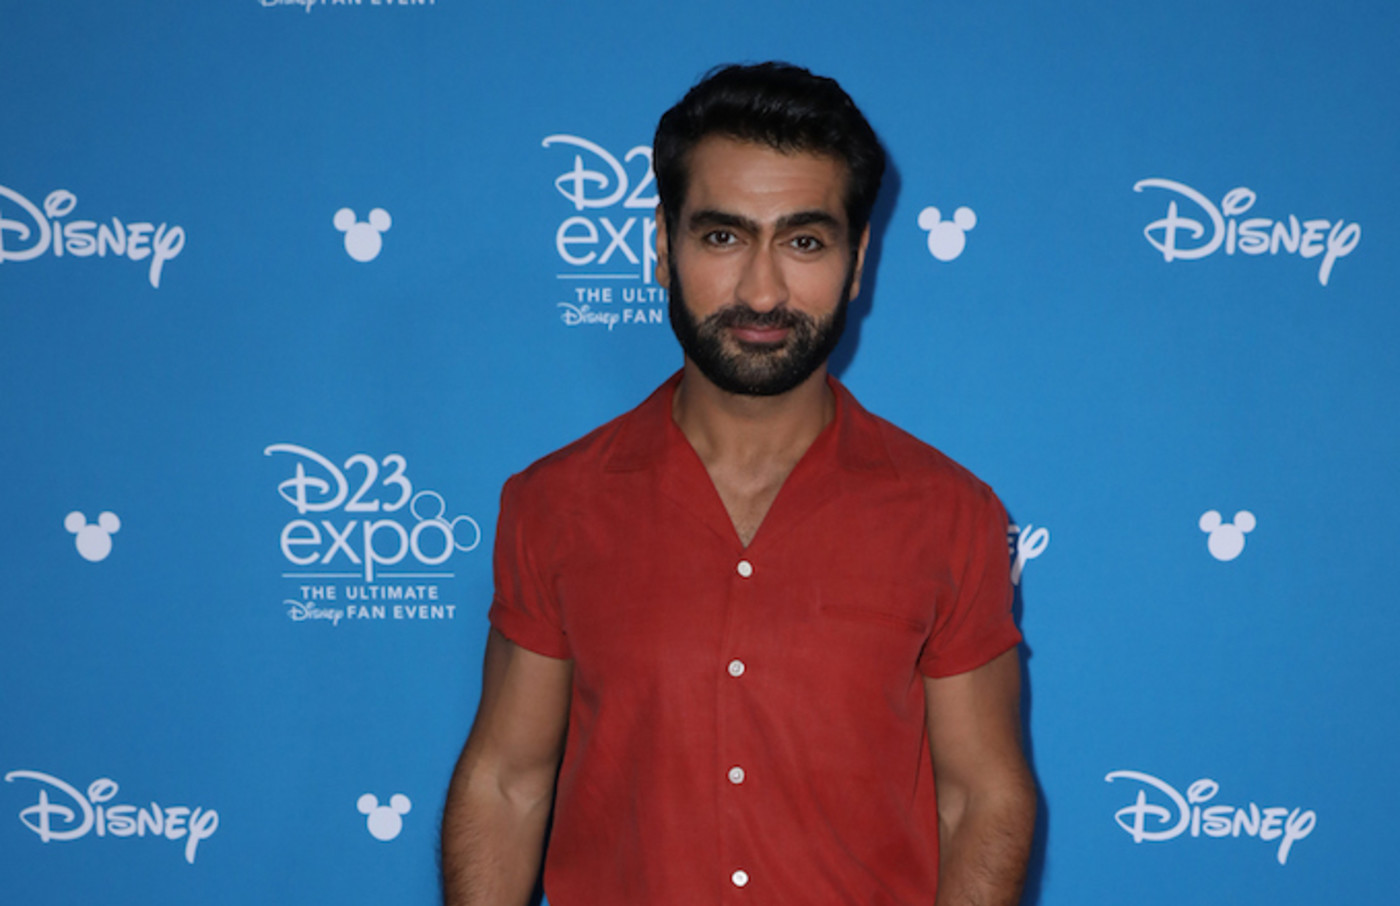 Kumail Nanjiani at D23 Expo 2019.